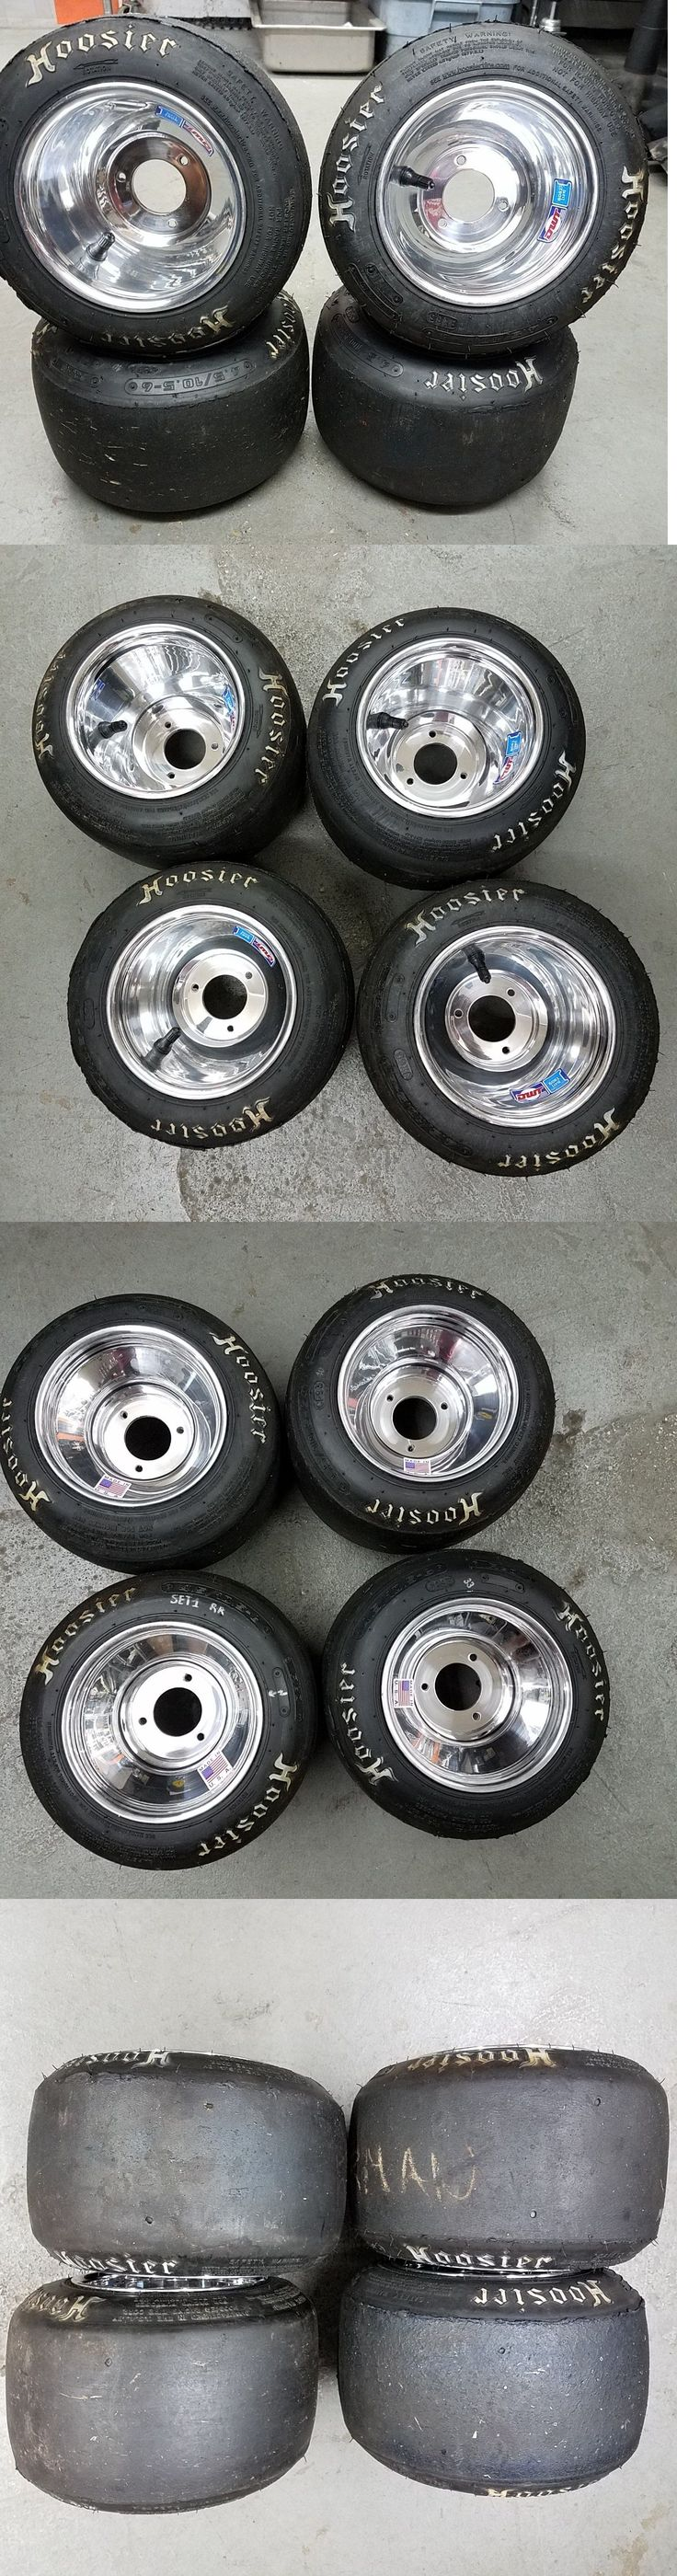 Parts and Accessories 64657: Go Kart Wheels, Go Kart Tires, Radio Flyer Wagon Tires, Complete Set Of (4) -> BUY IT NOW ONLY: $186 on eBay!